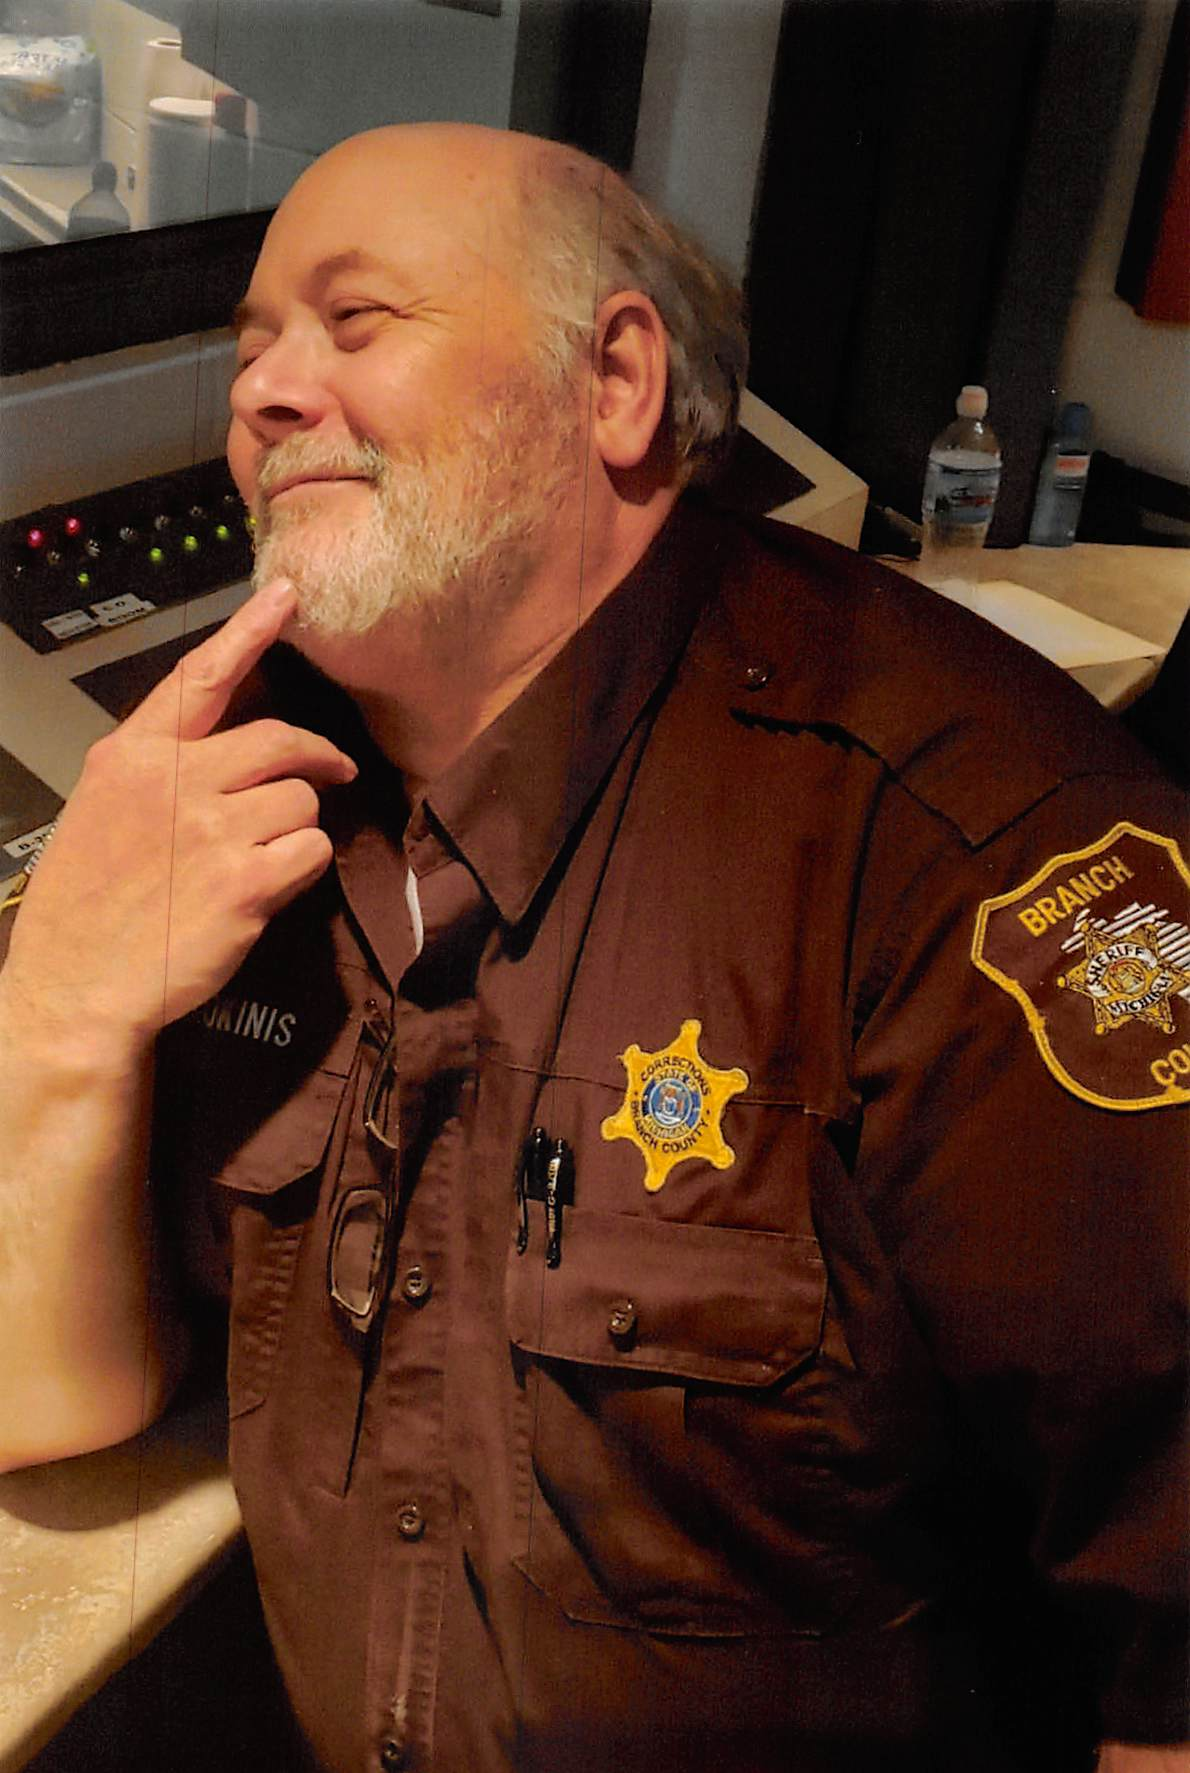 Corrections Deputy Kevin Kokinis | Branch County Sheriff's Office, Michigan